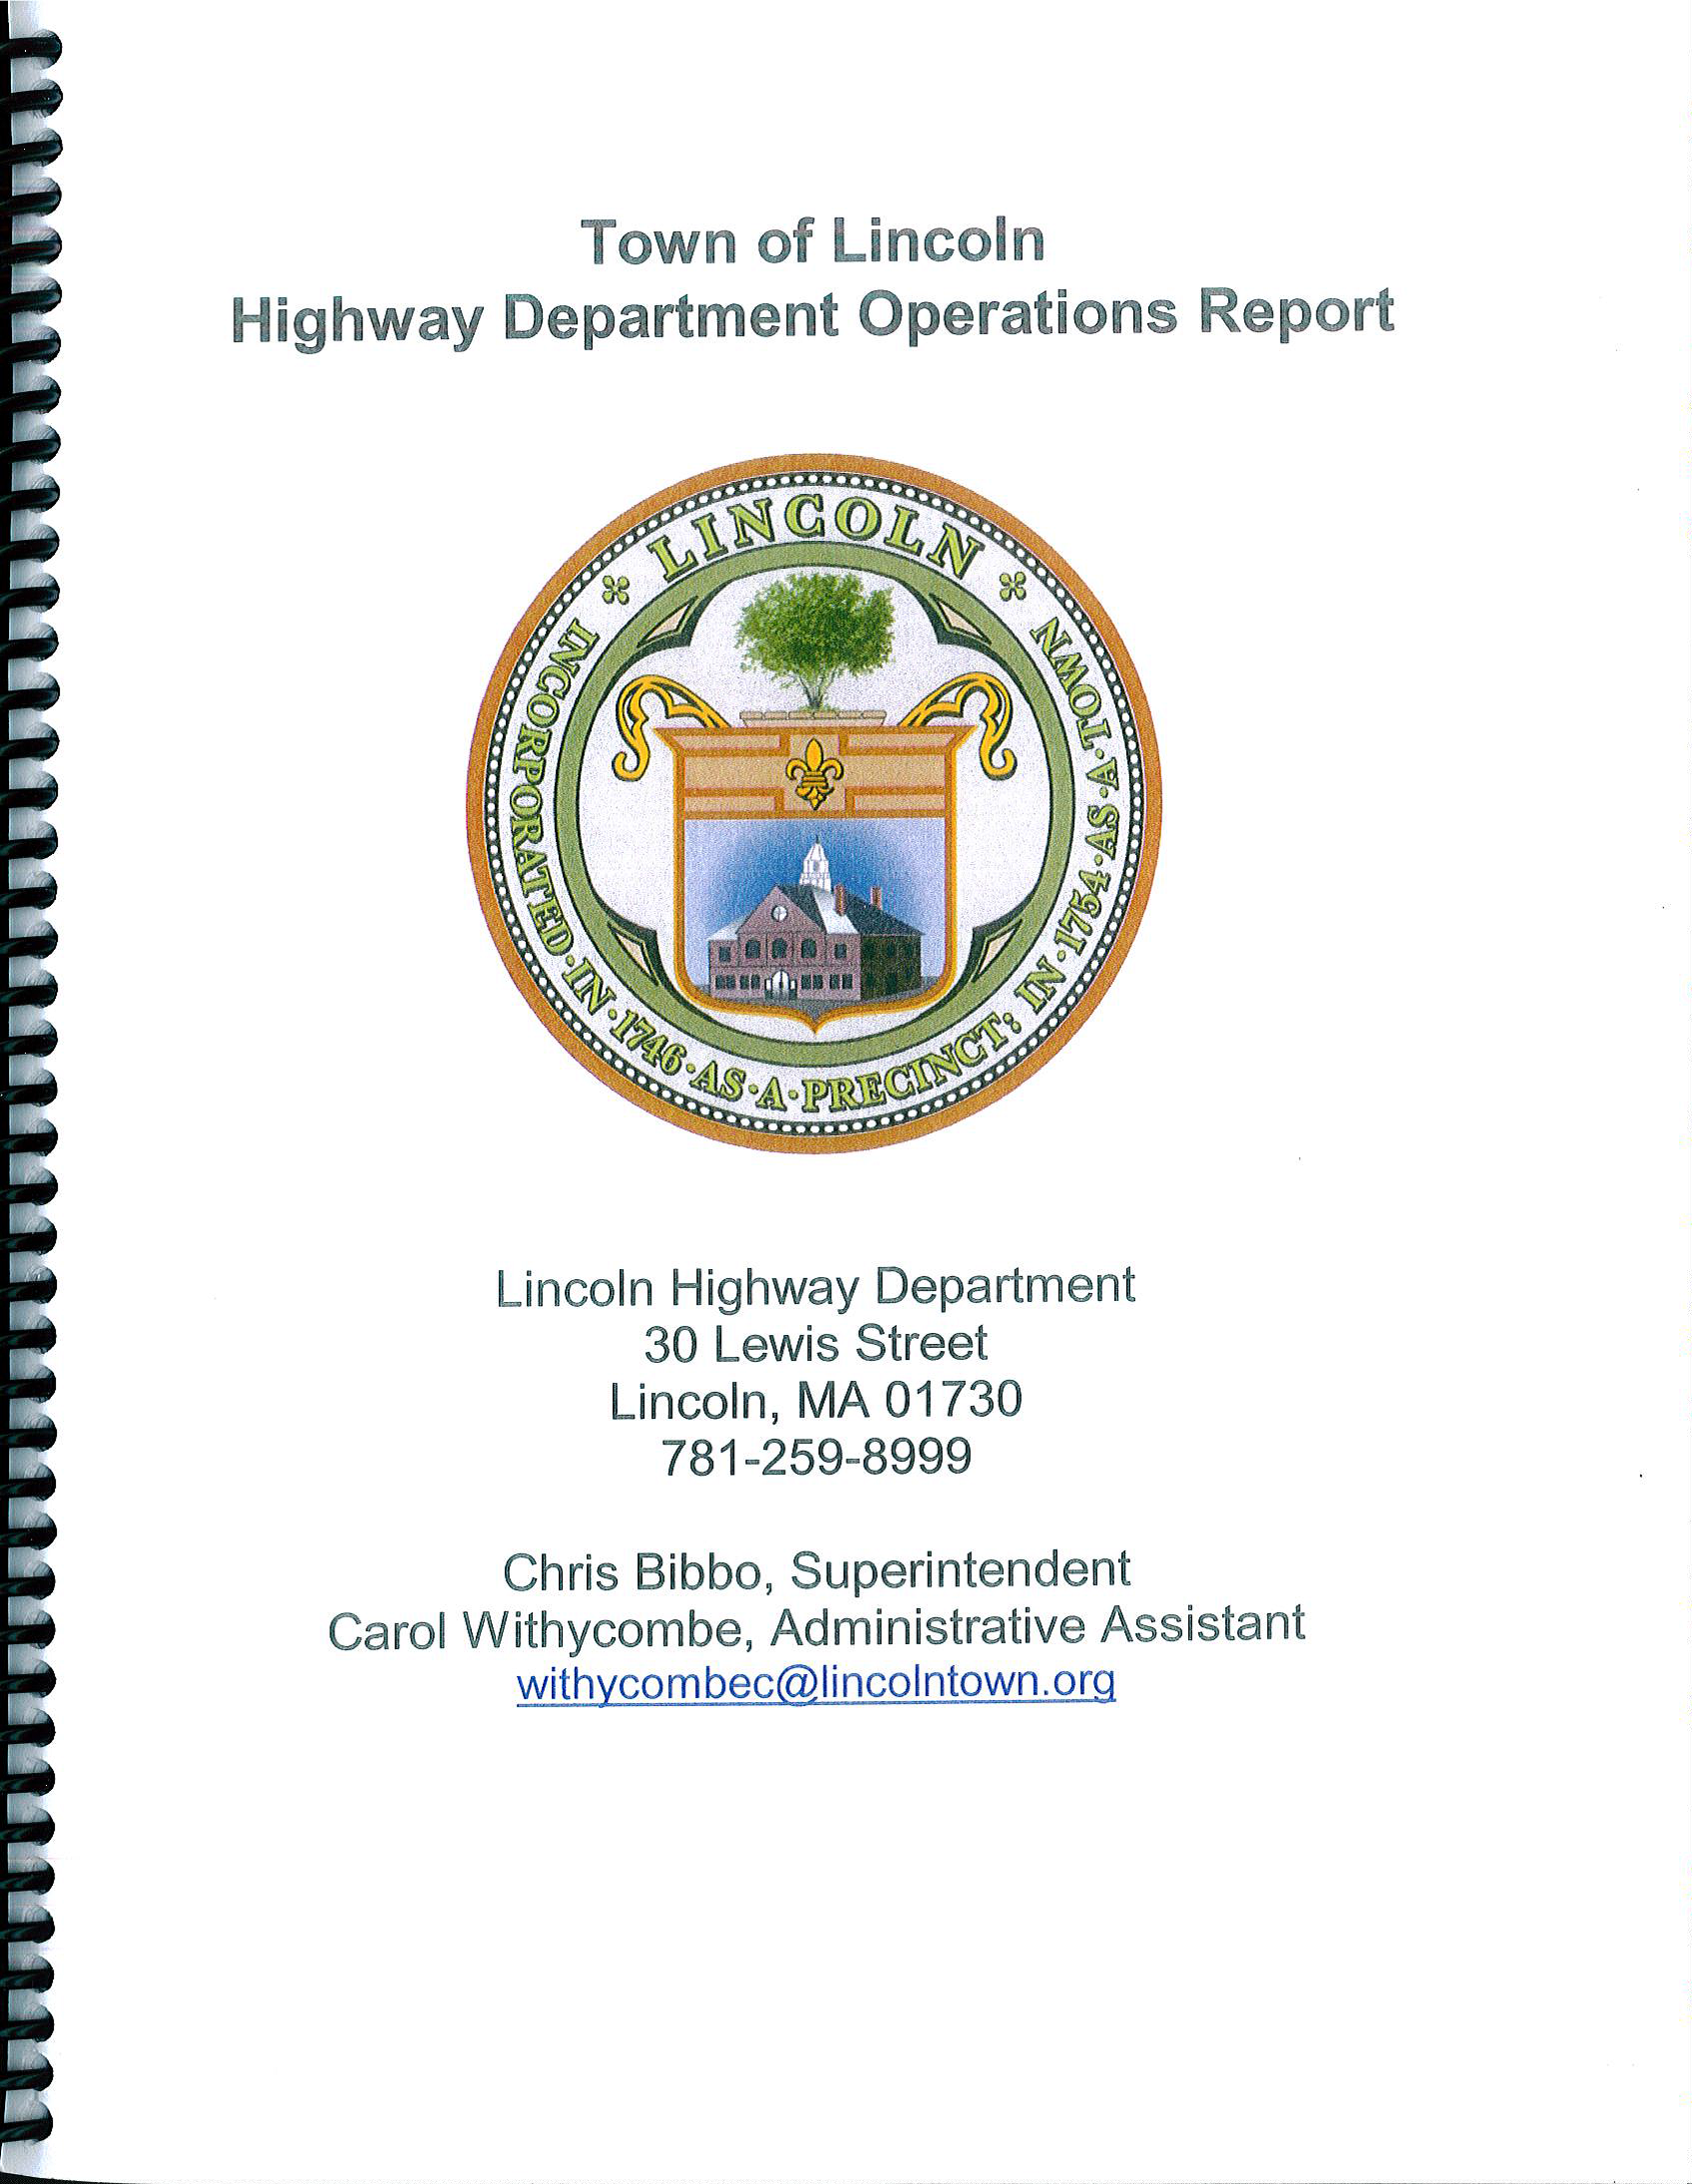 Cover for Highway Department Operations Report.png